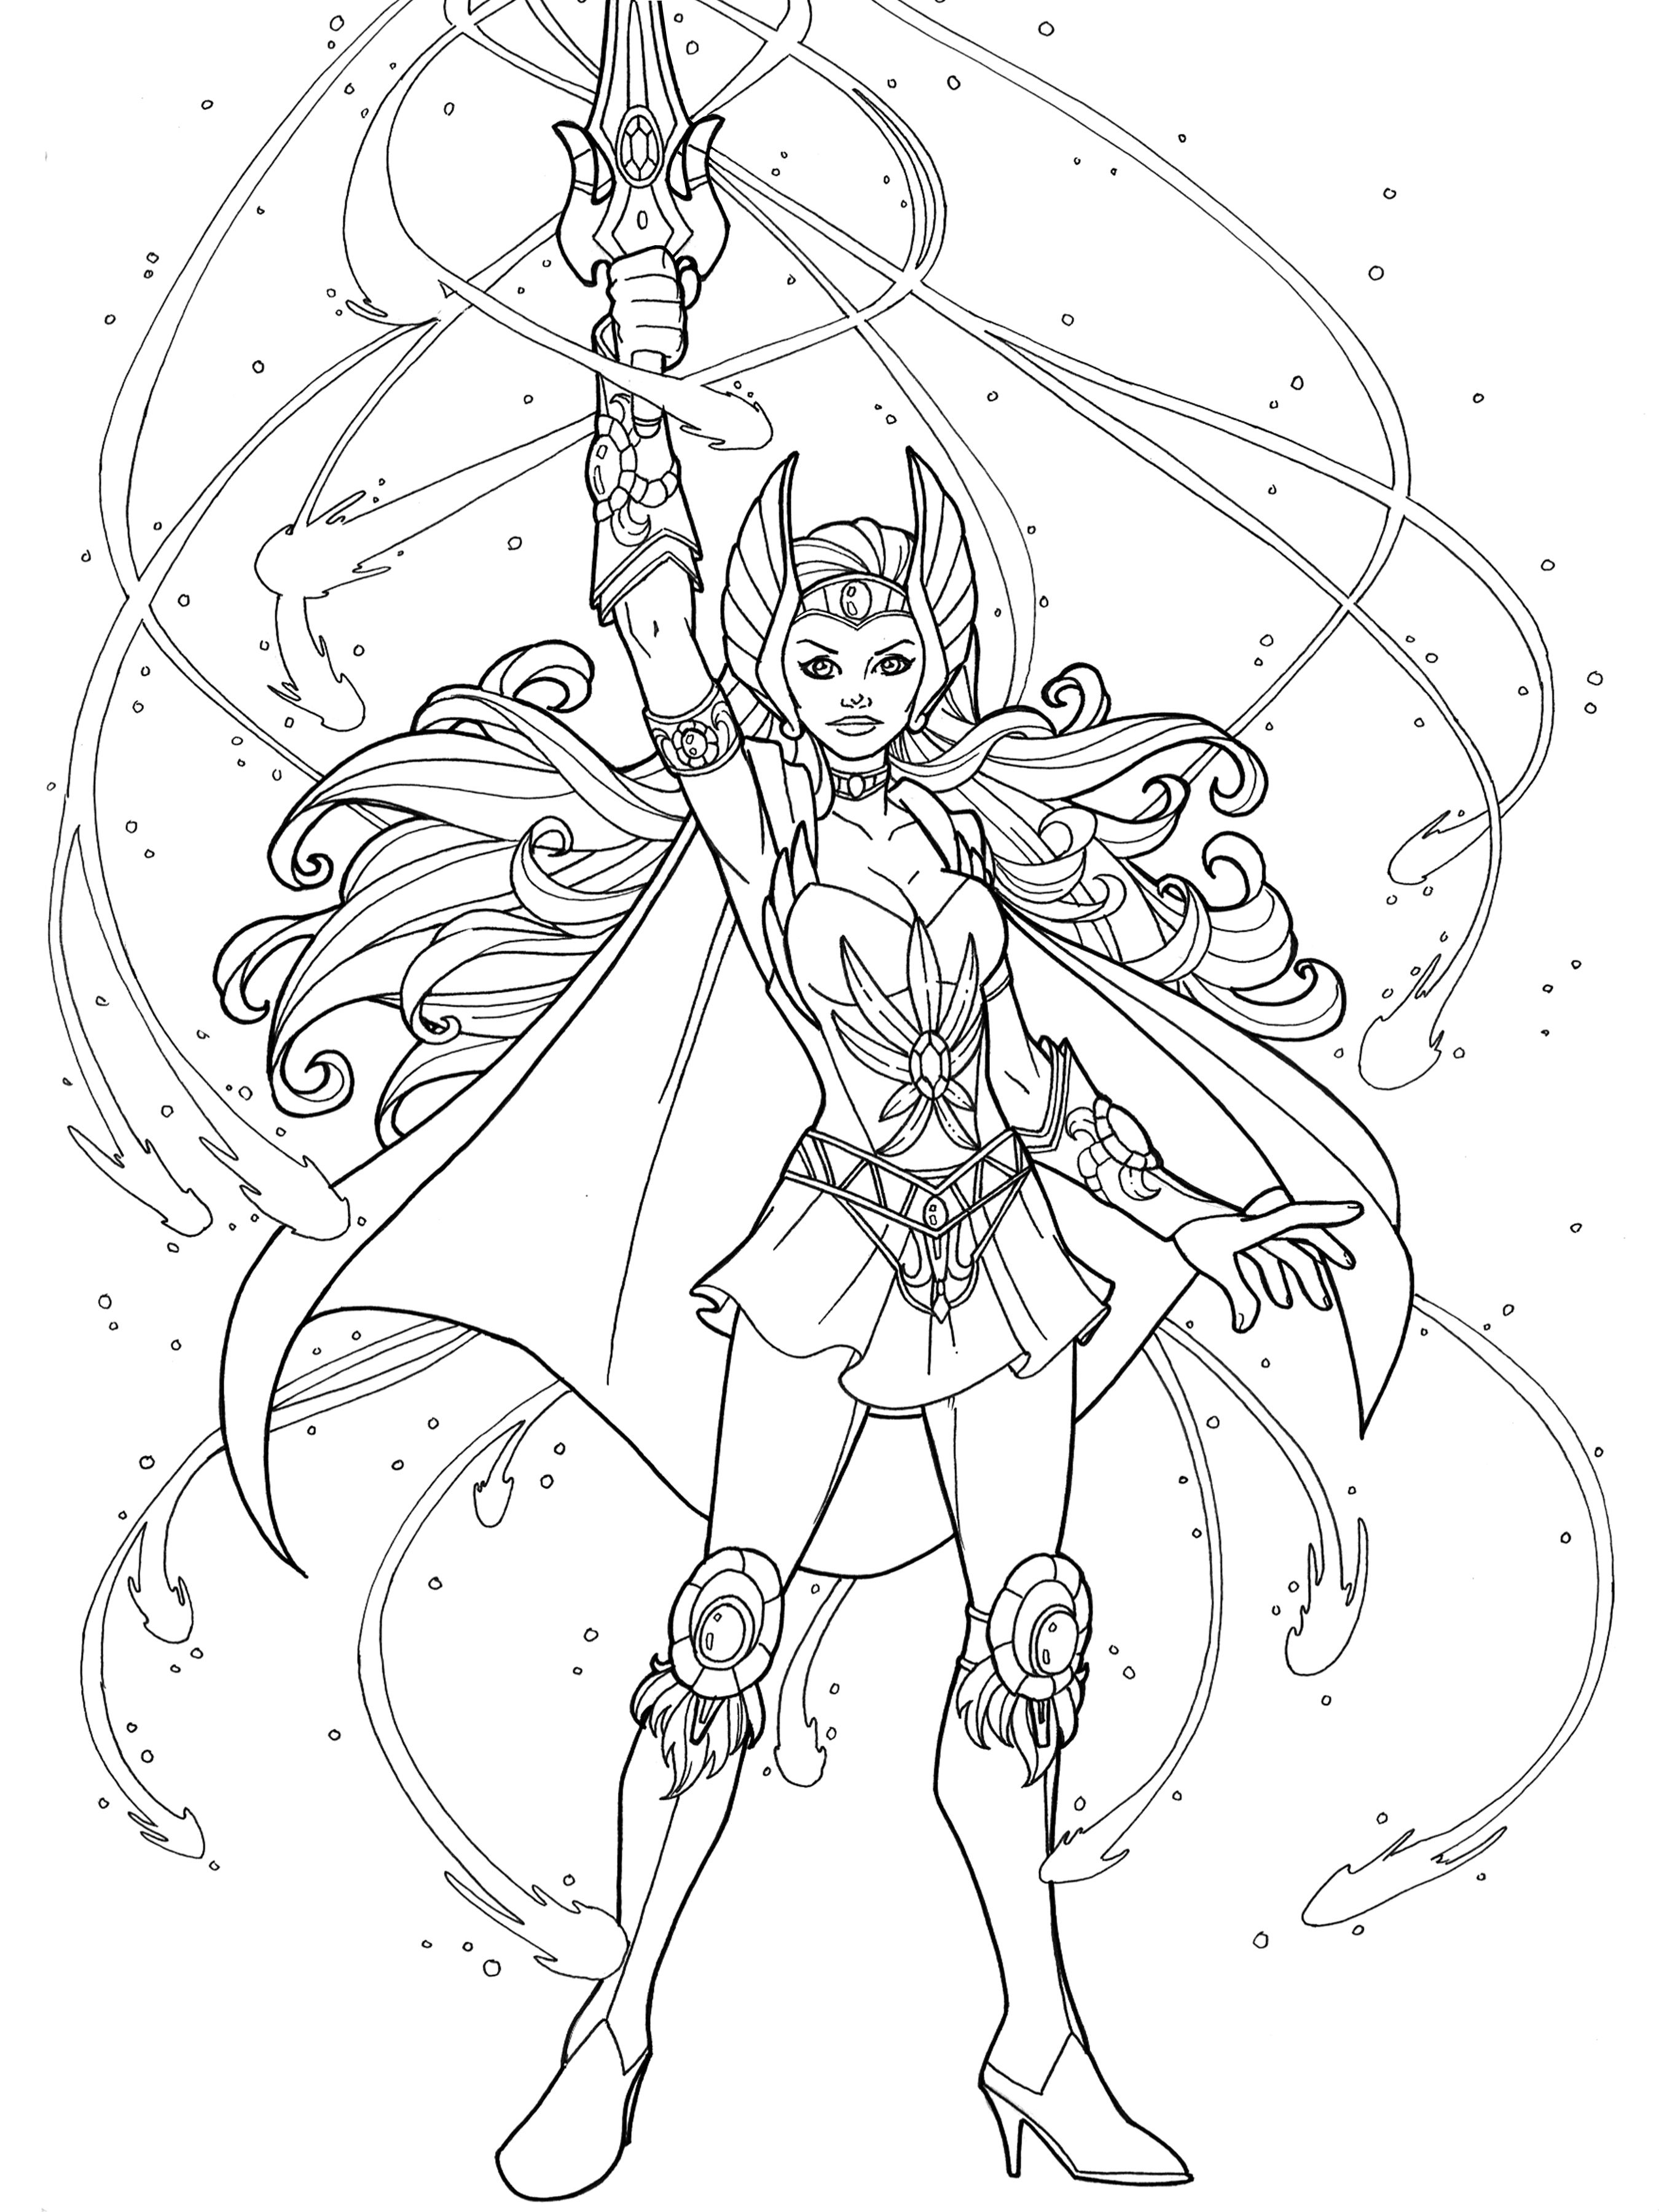 She Ra To Save The Day Coloring Pages For Girls Sheets Adult